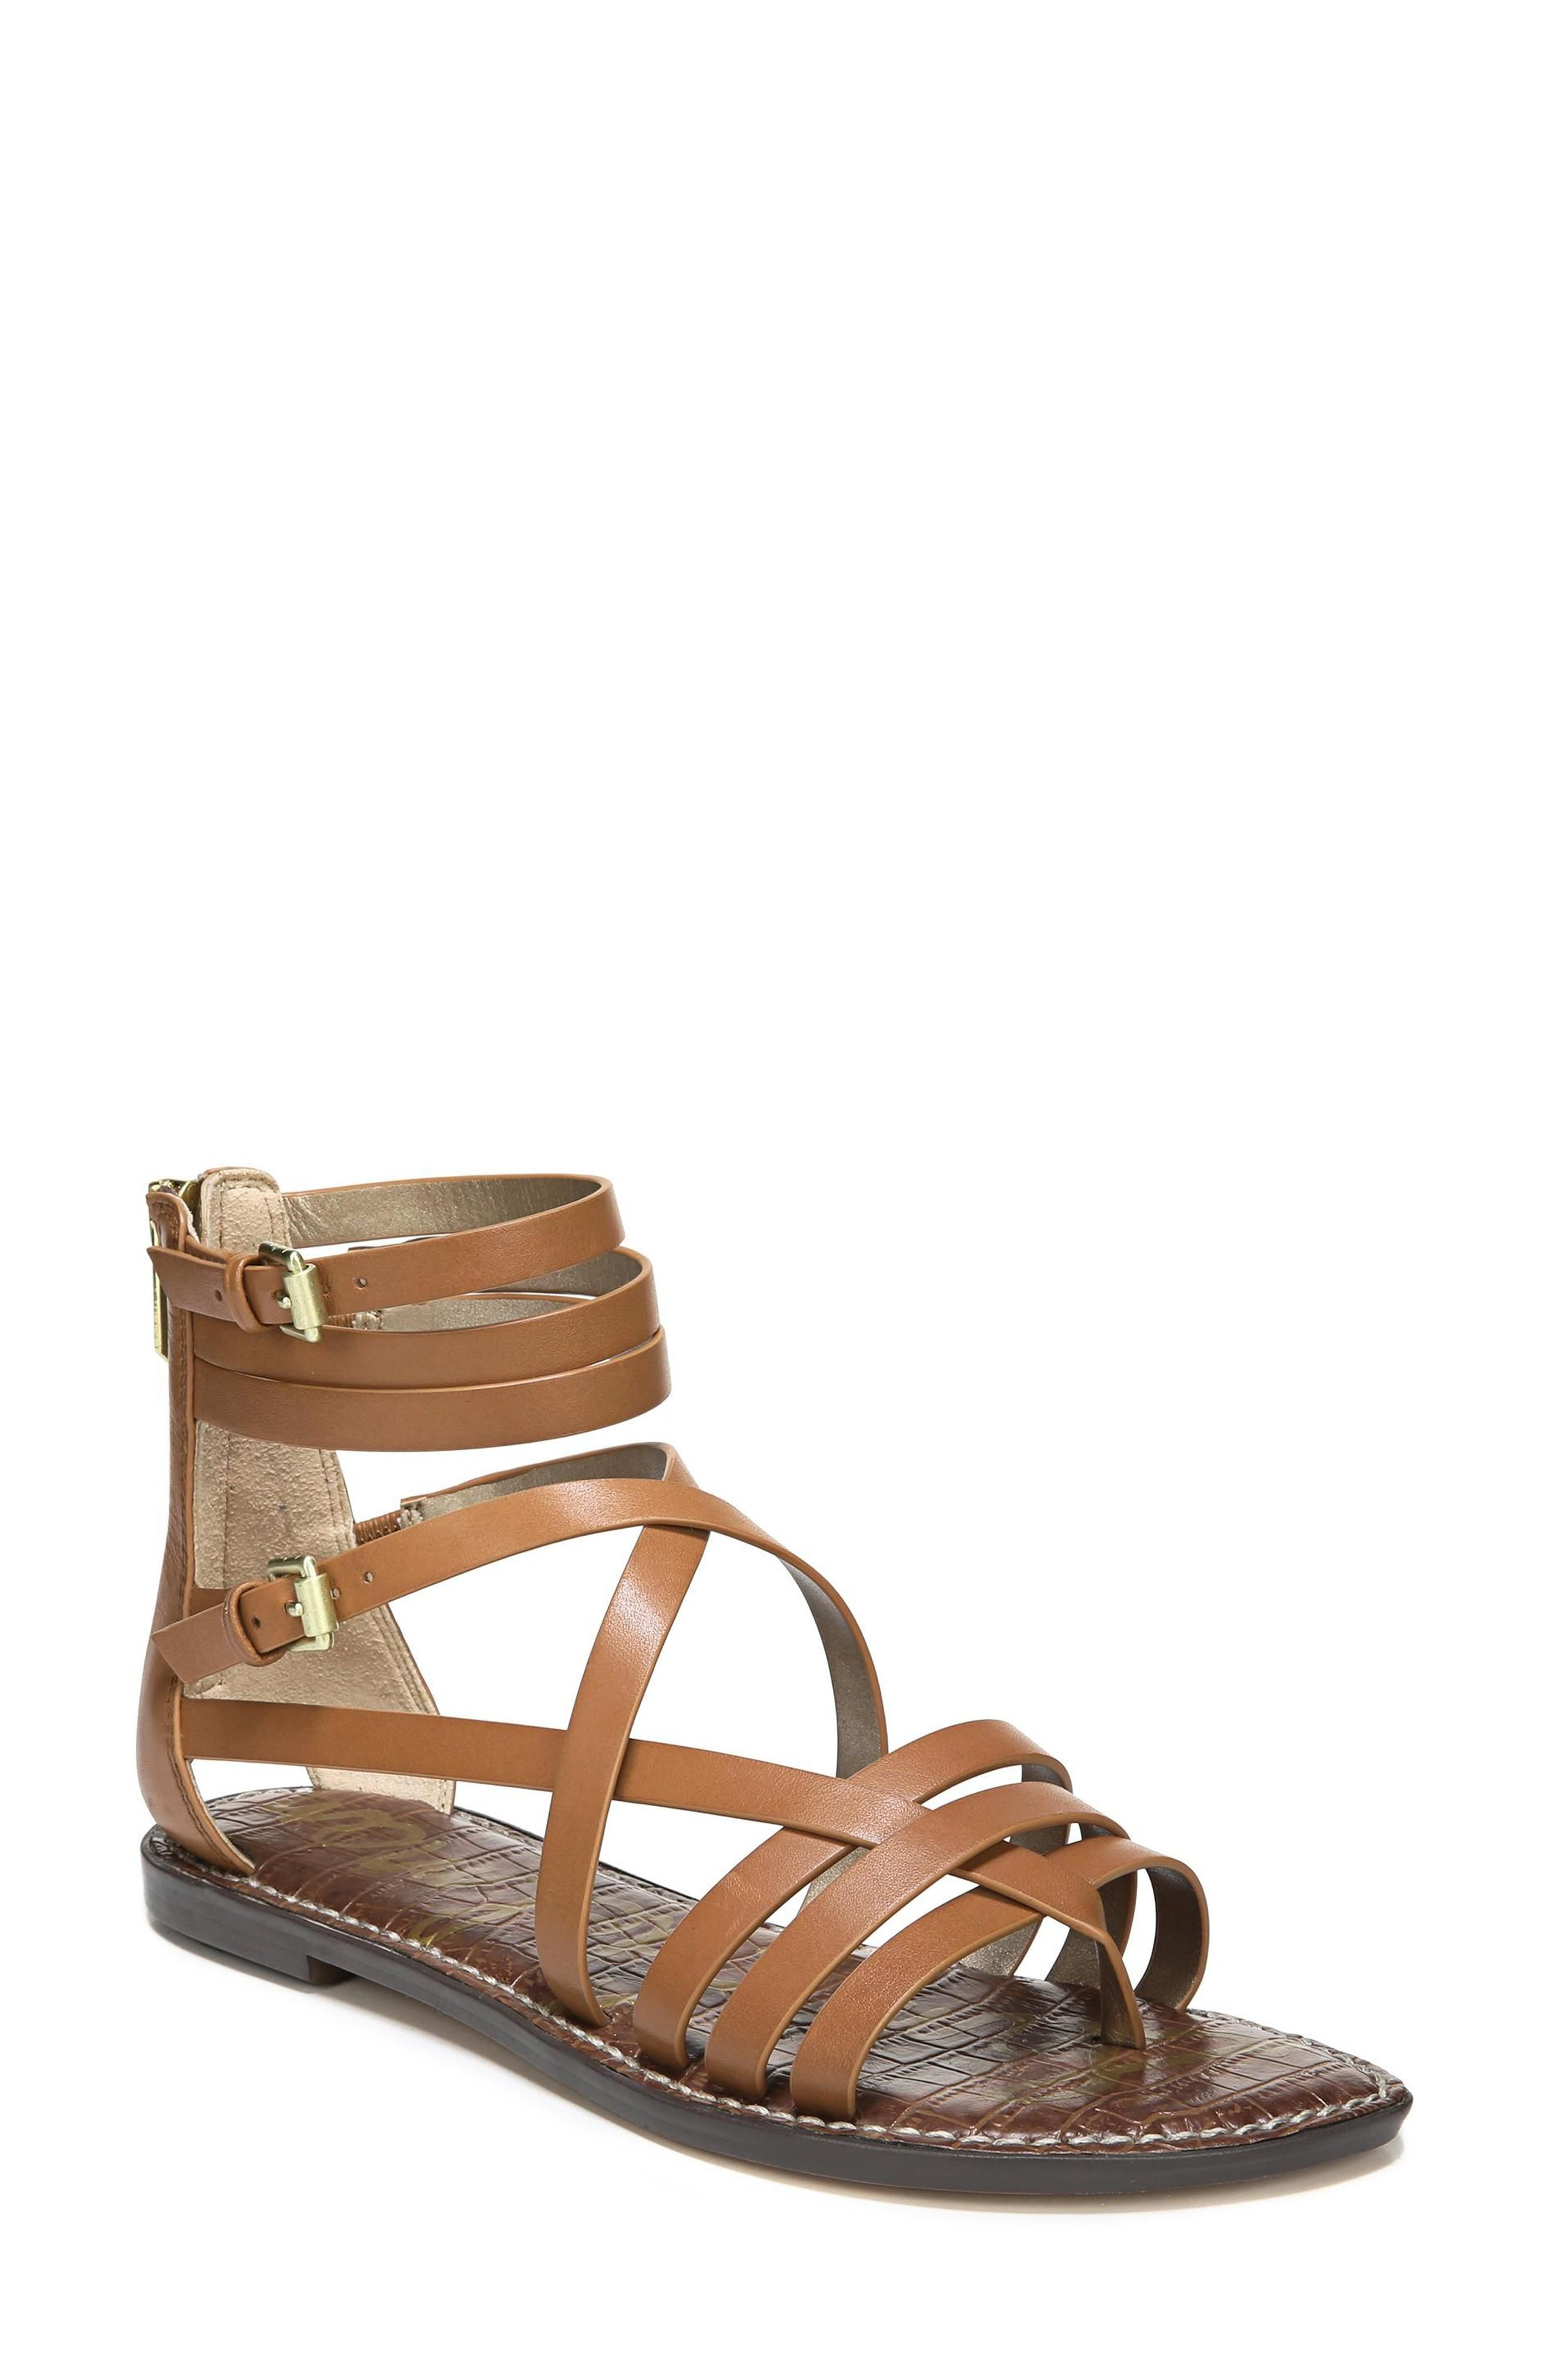 f7372d35e Sam Edelman Ganesa Strappy Sandal In Saddle Leather